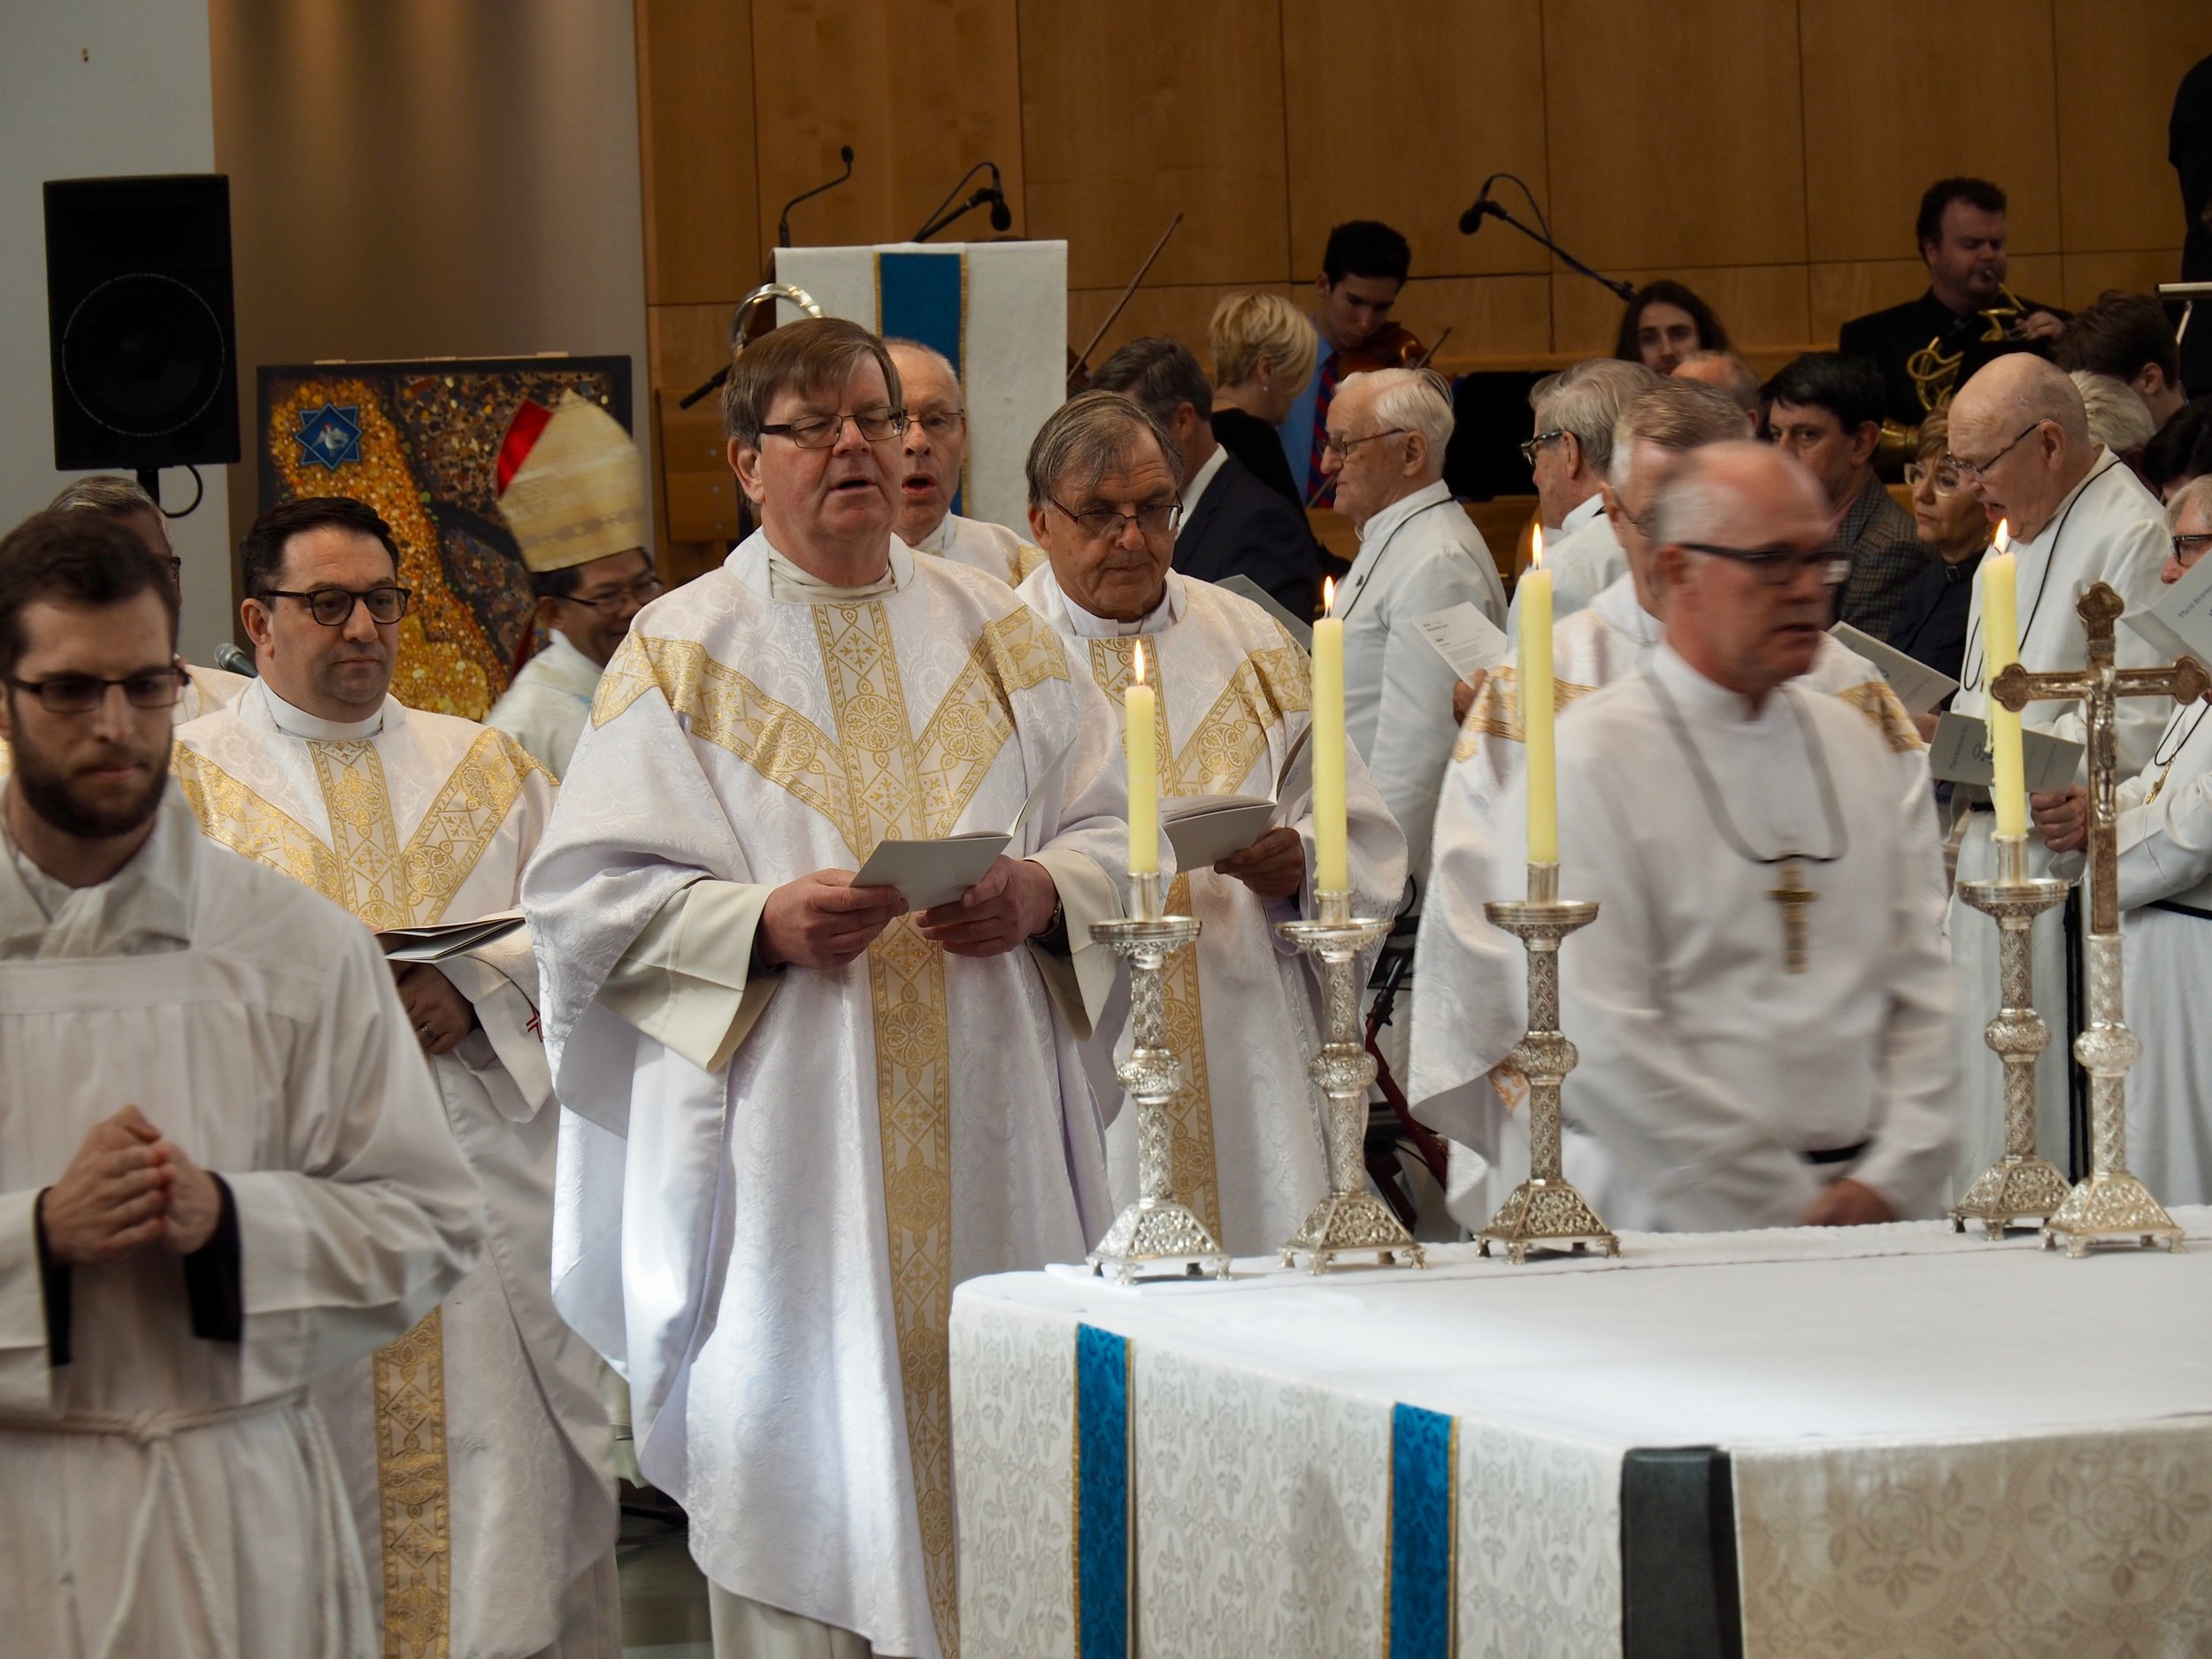 Bicentenary Mass Sydney 12 Aug 2017 Photos by Paul Harris 00013.jpg